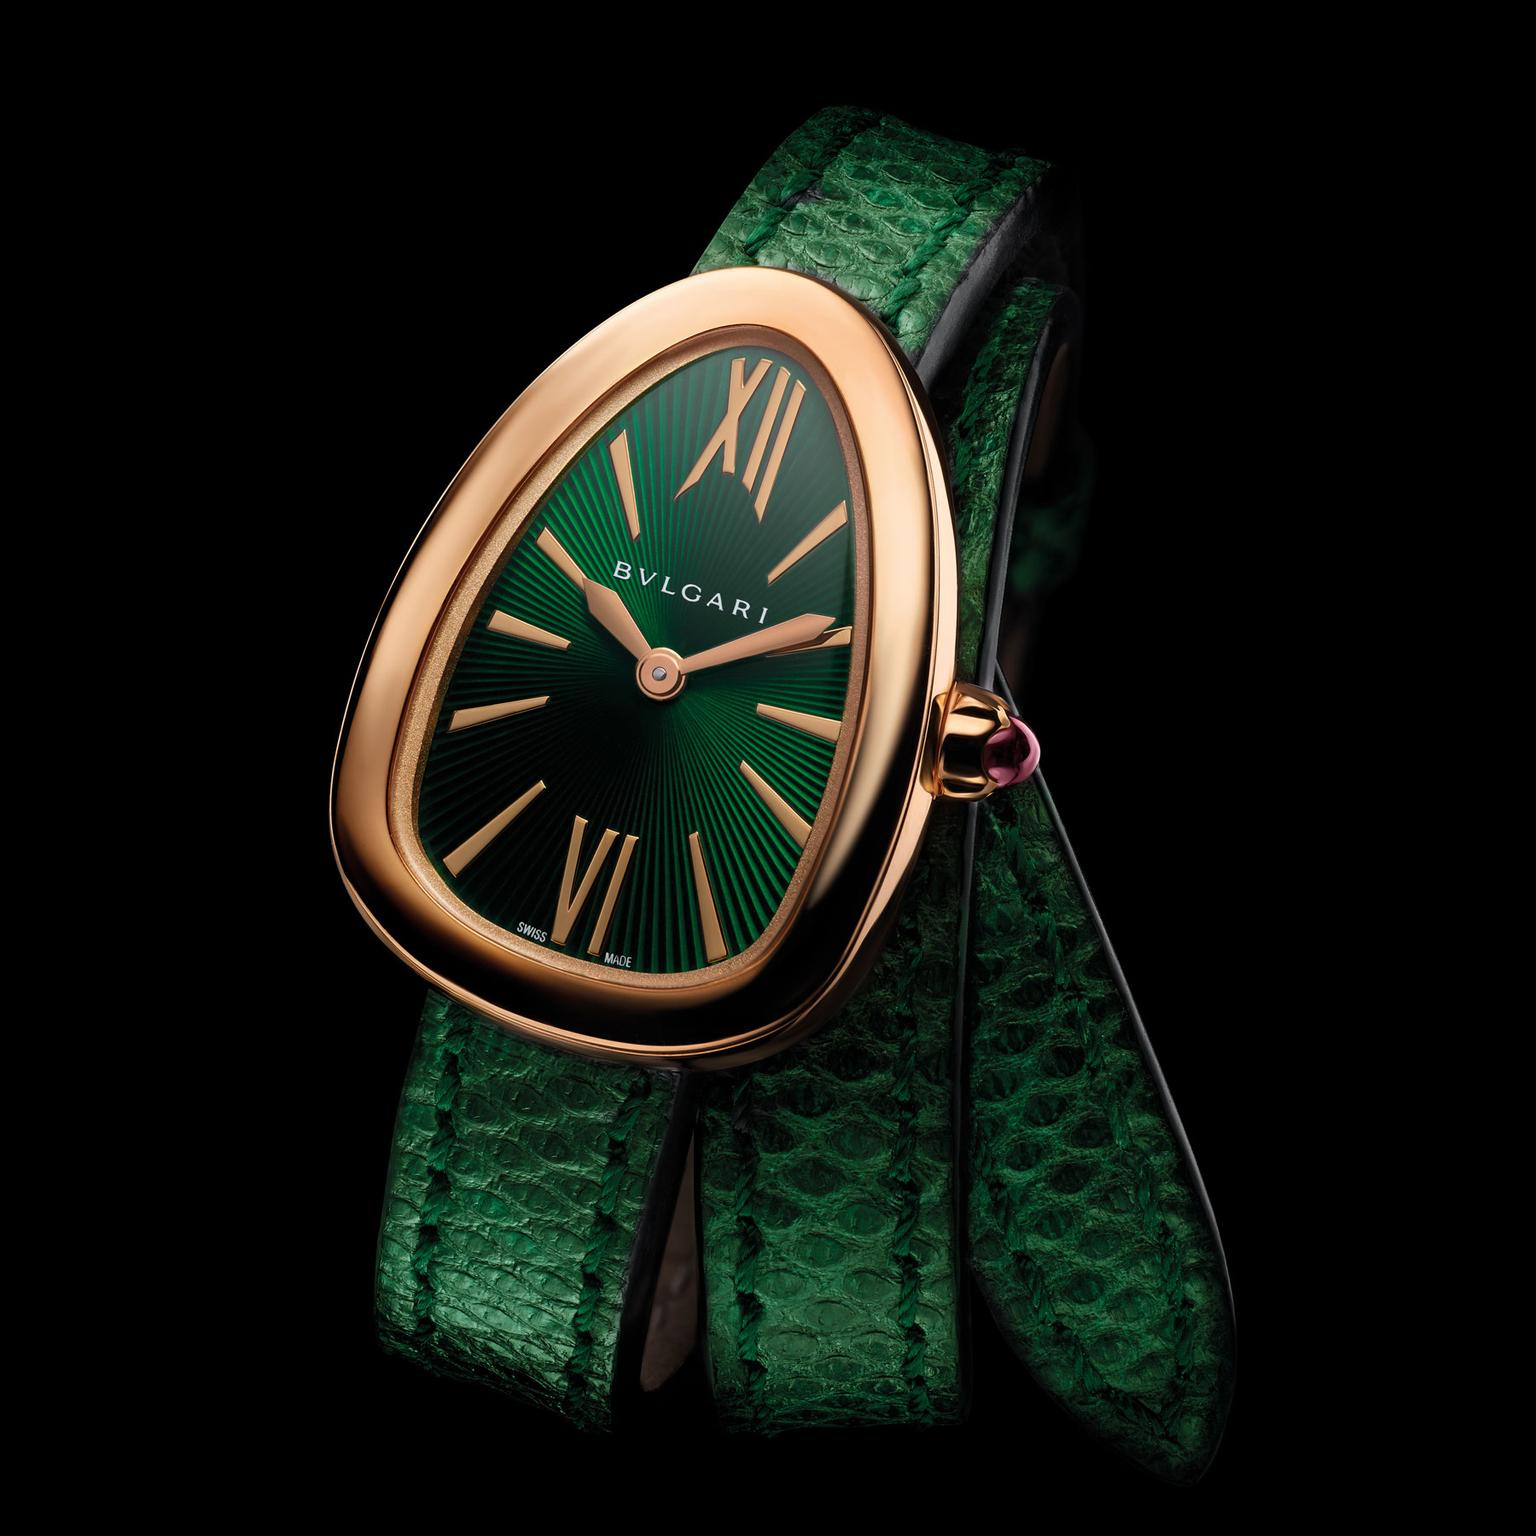 Bulgari Serpenti watch with Karung snakeskin strap